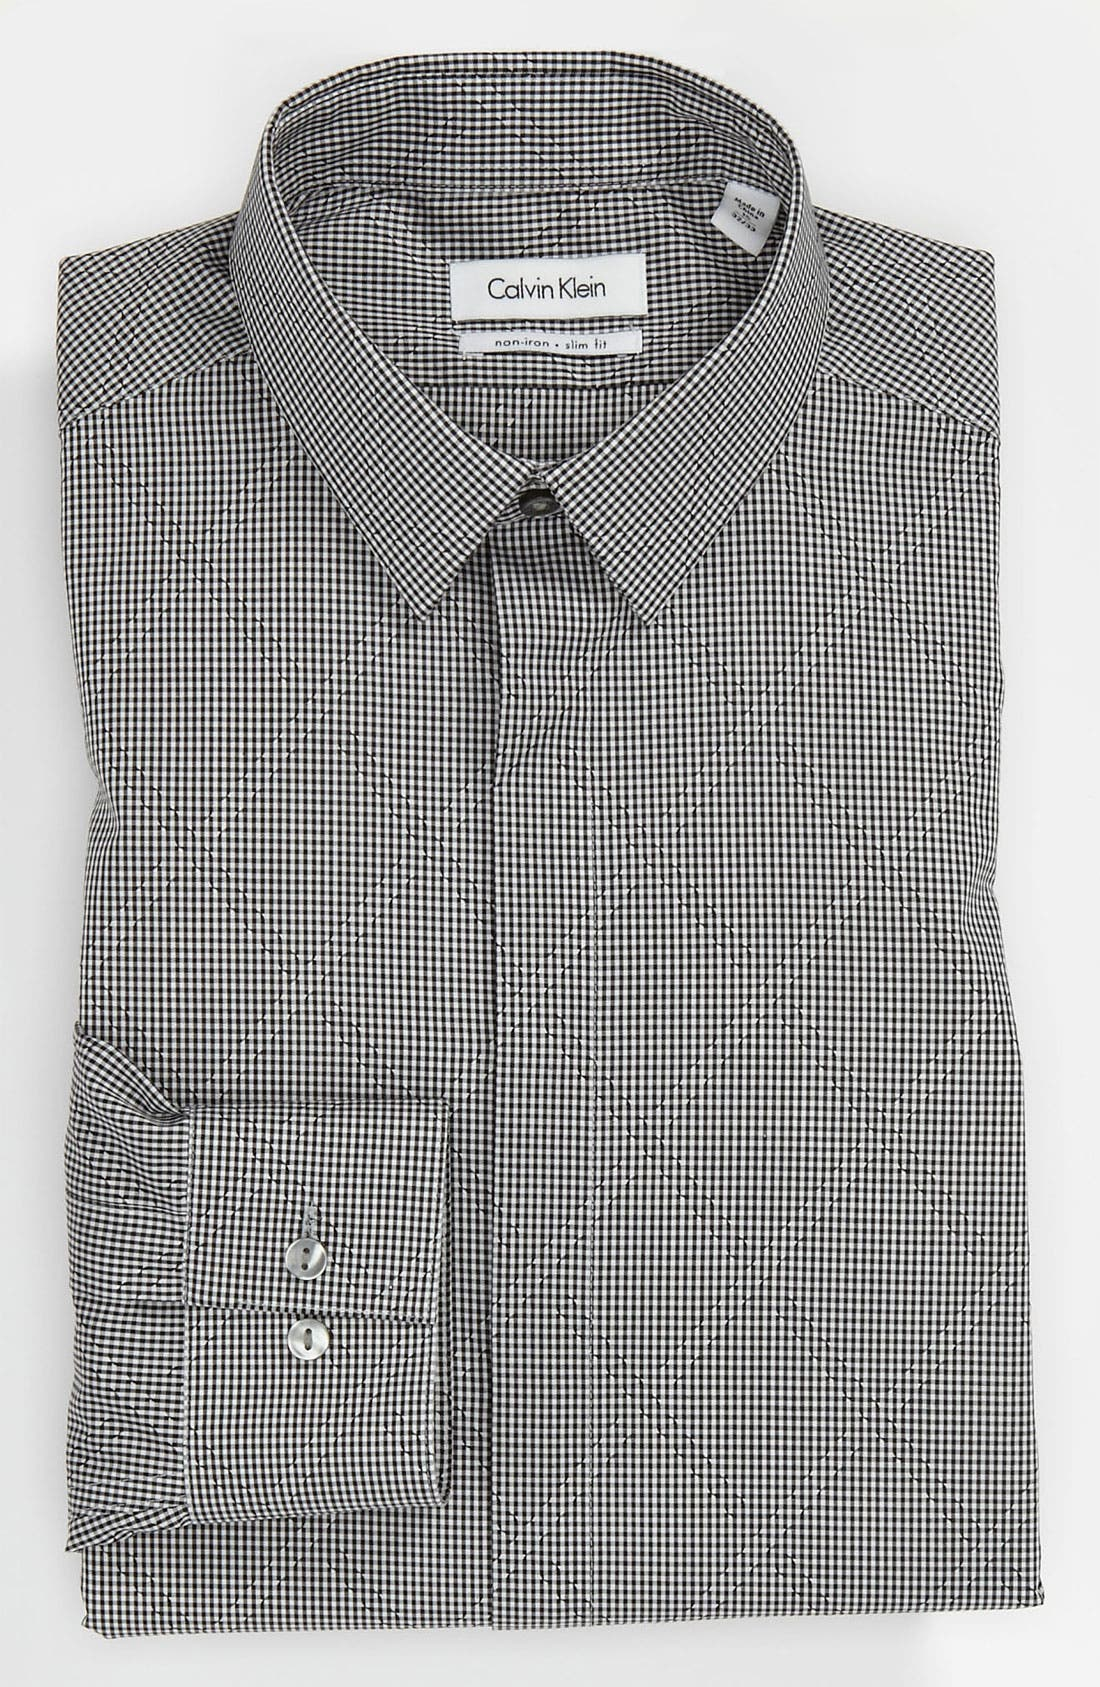 Alternate Image 1 Selected - Calvin Klein 'Como Check' Slim Fit Dress Shirt